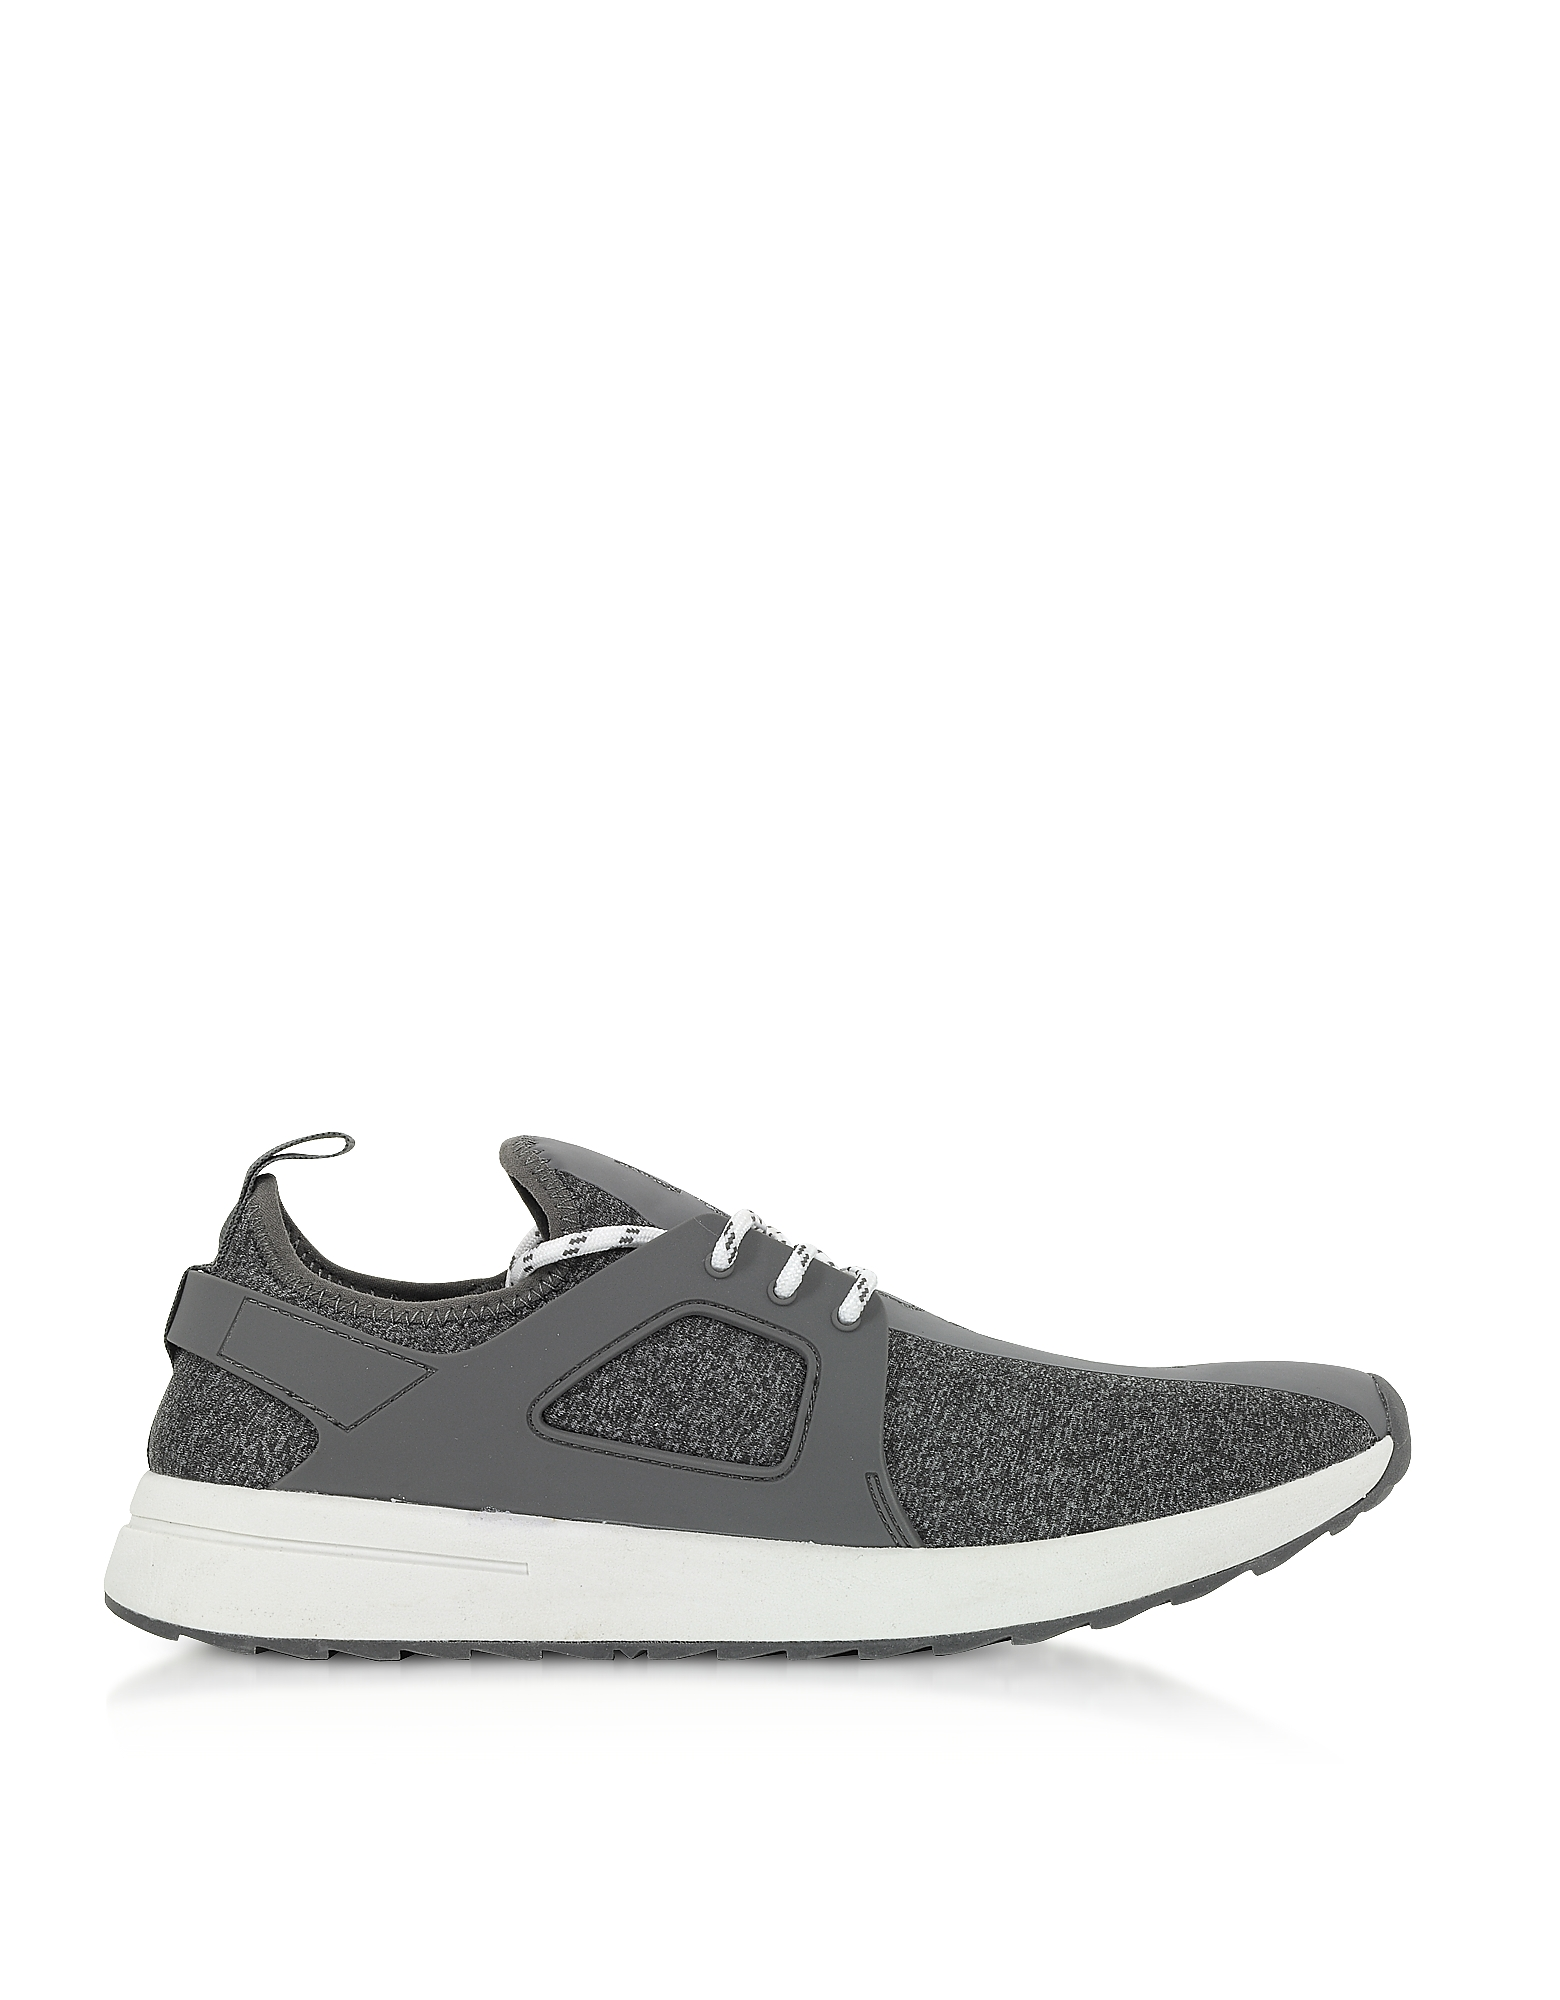 Versace Jeans Designer Shoes, Grey Knitted Jersey Signature Men's Sneakers